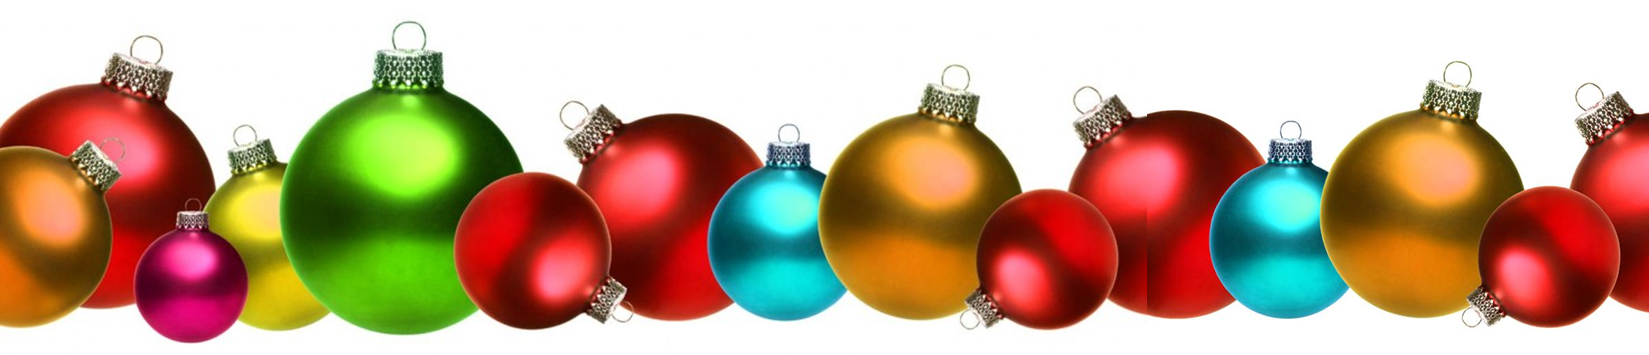 Free Pictures On Christmas Ornaments, Download Free Clip Art, Free.